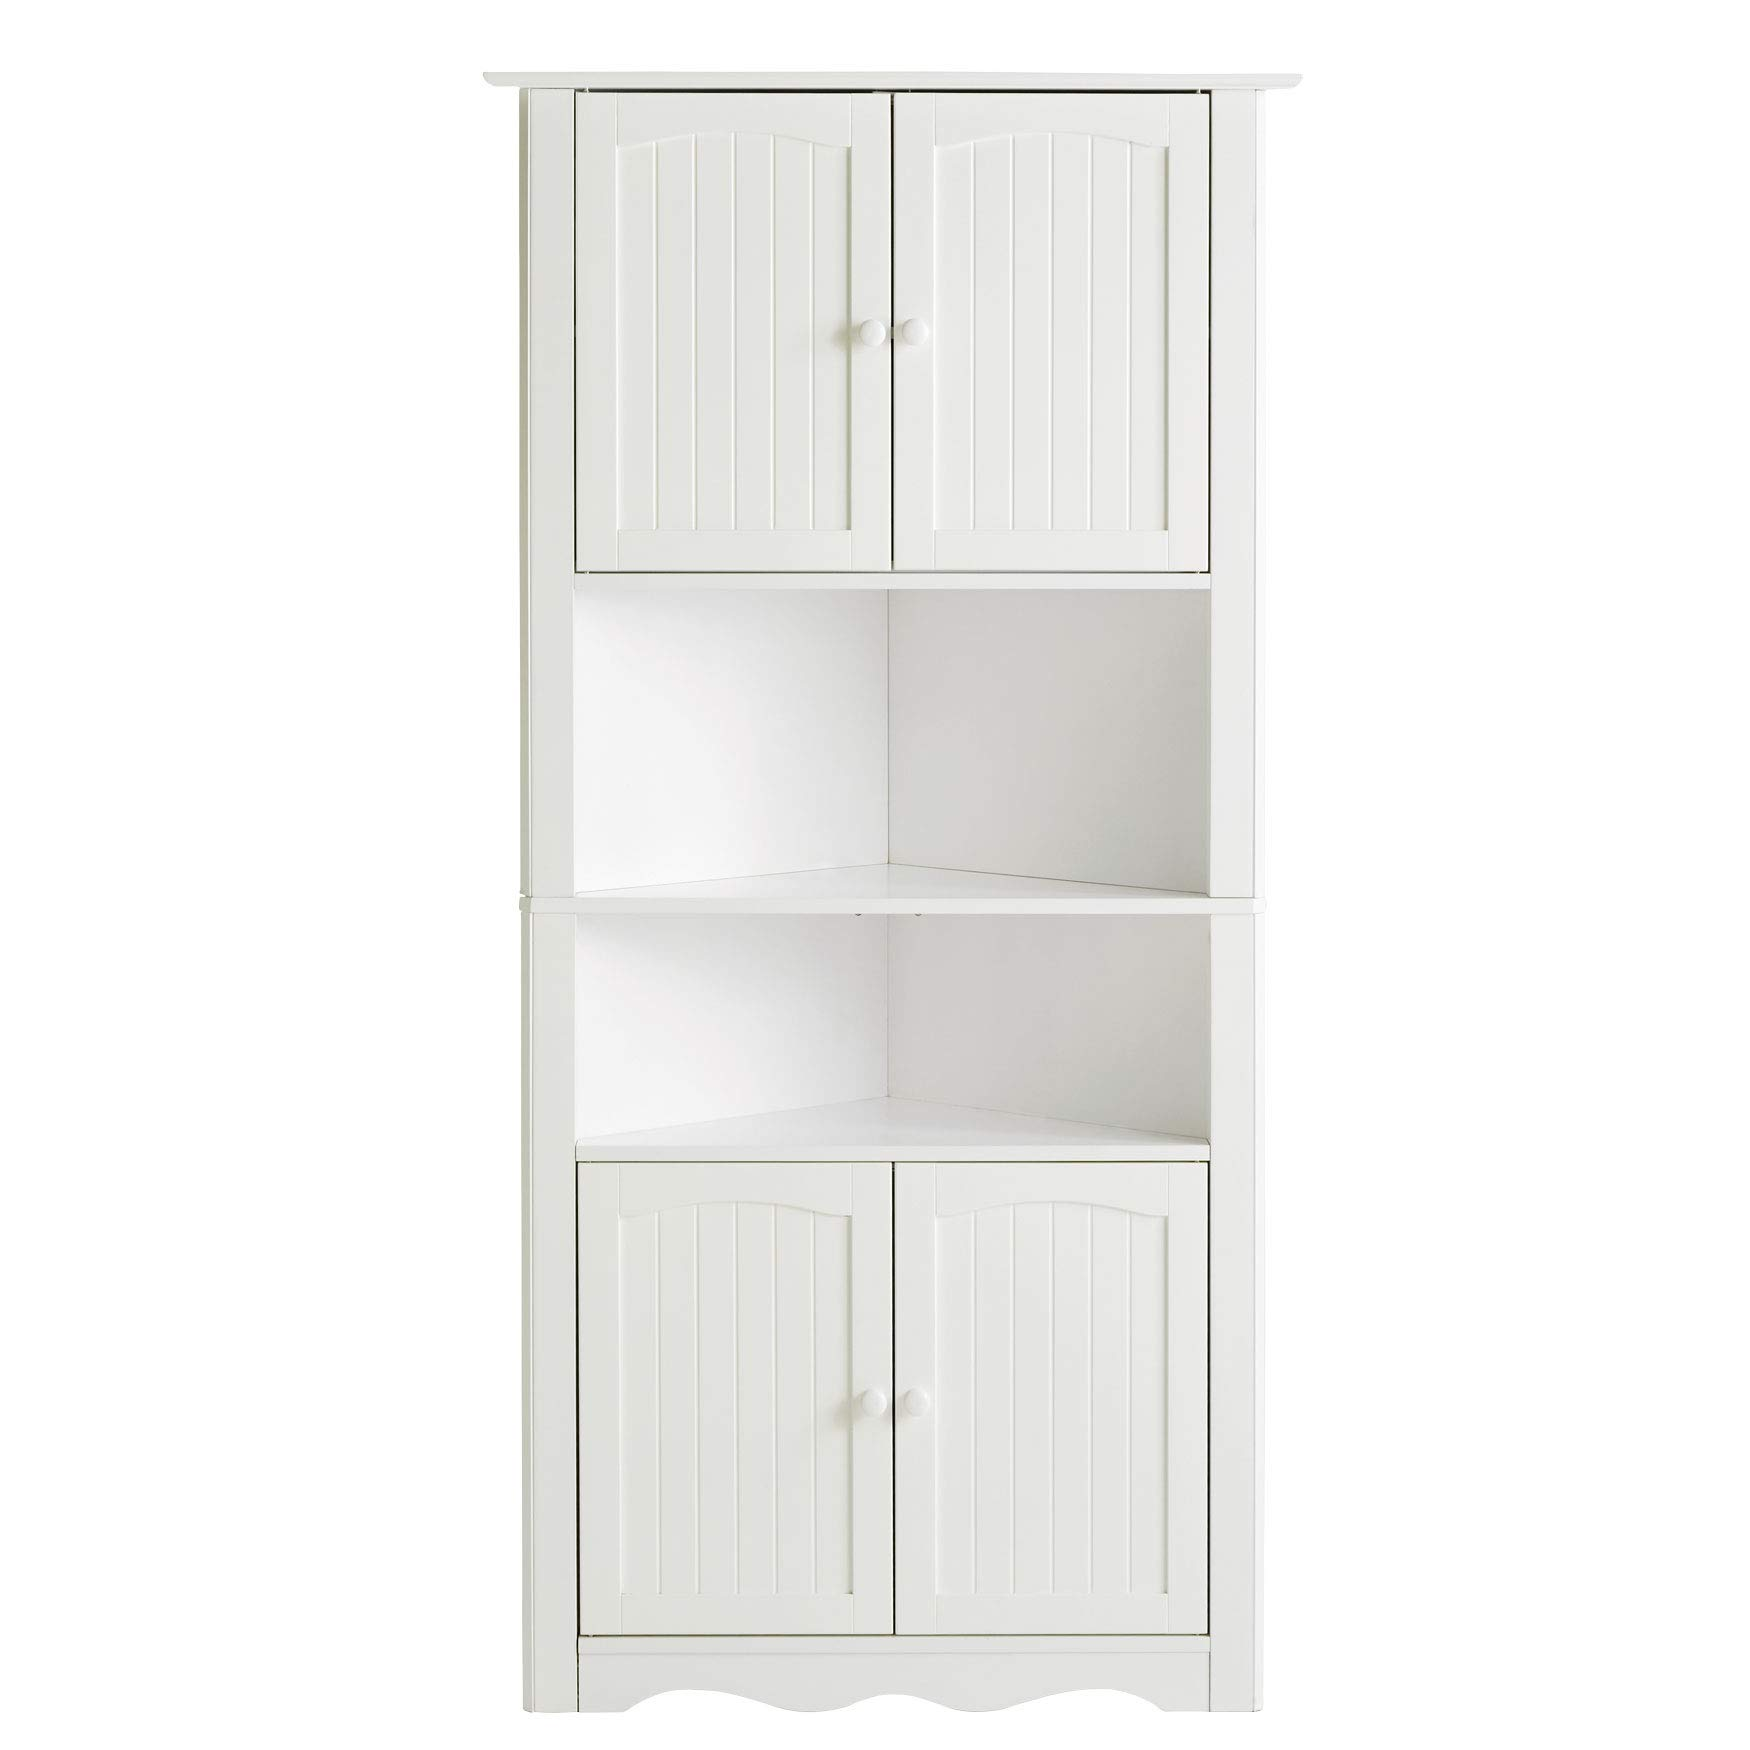 BrylaneHome Cottage Kitchen Corner Cabinet - White